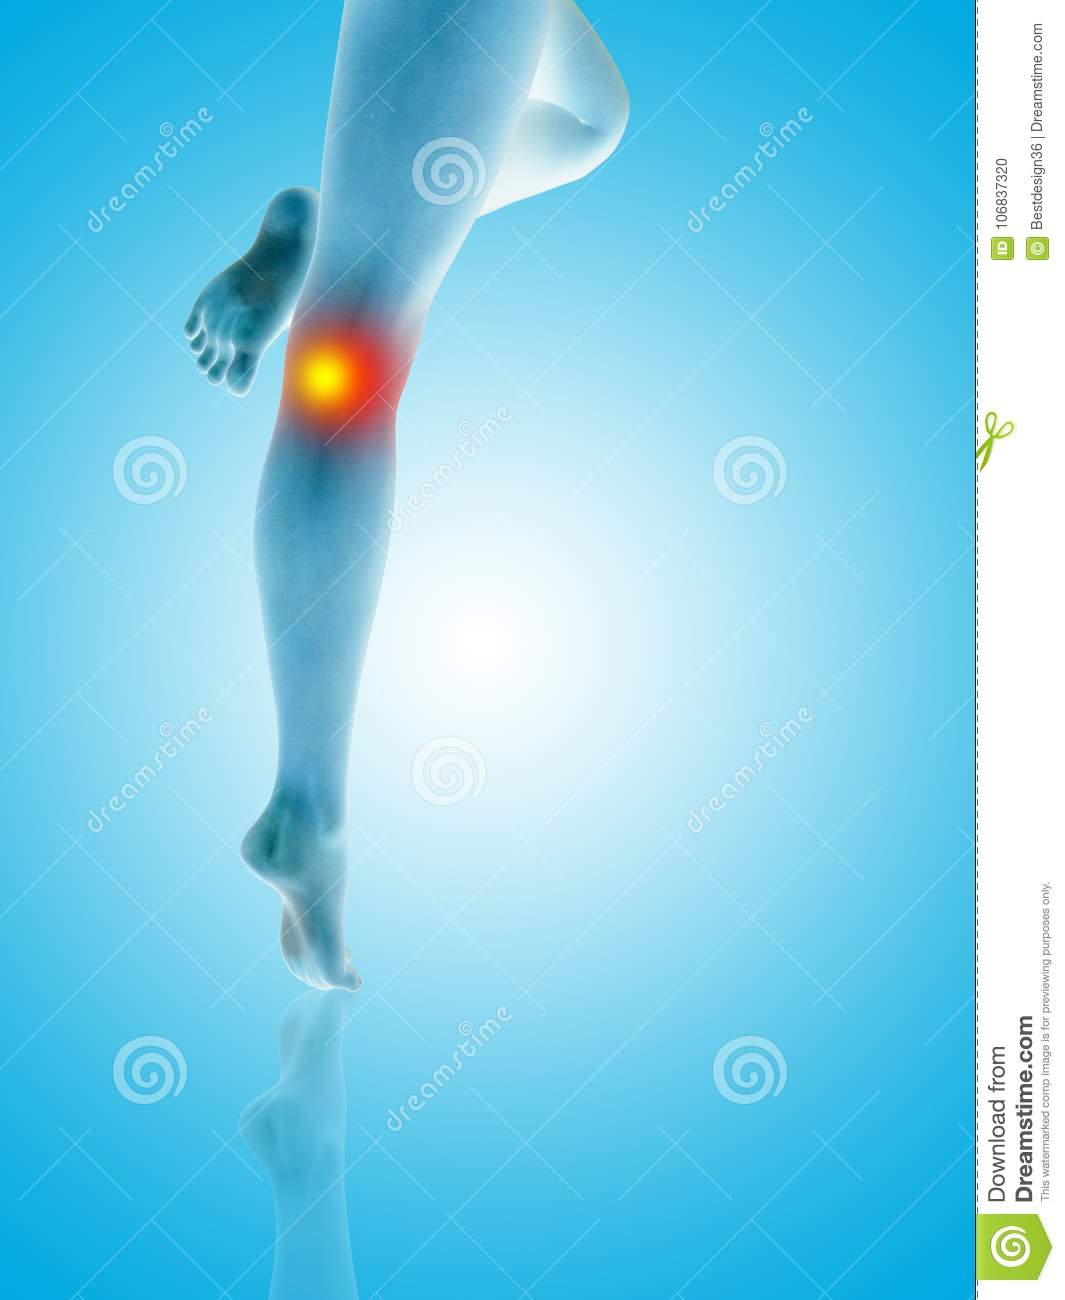 c8df7d3b121 Conceptual beautiful woman or girl legs and feet with a hurt knee pain or  ache closeup